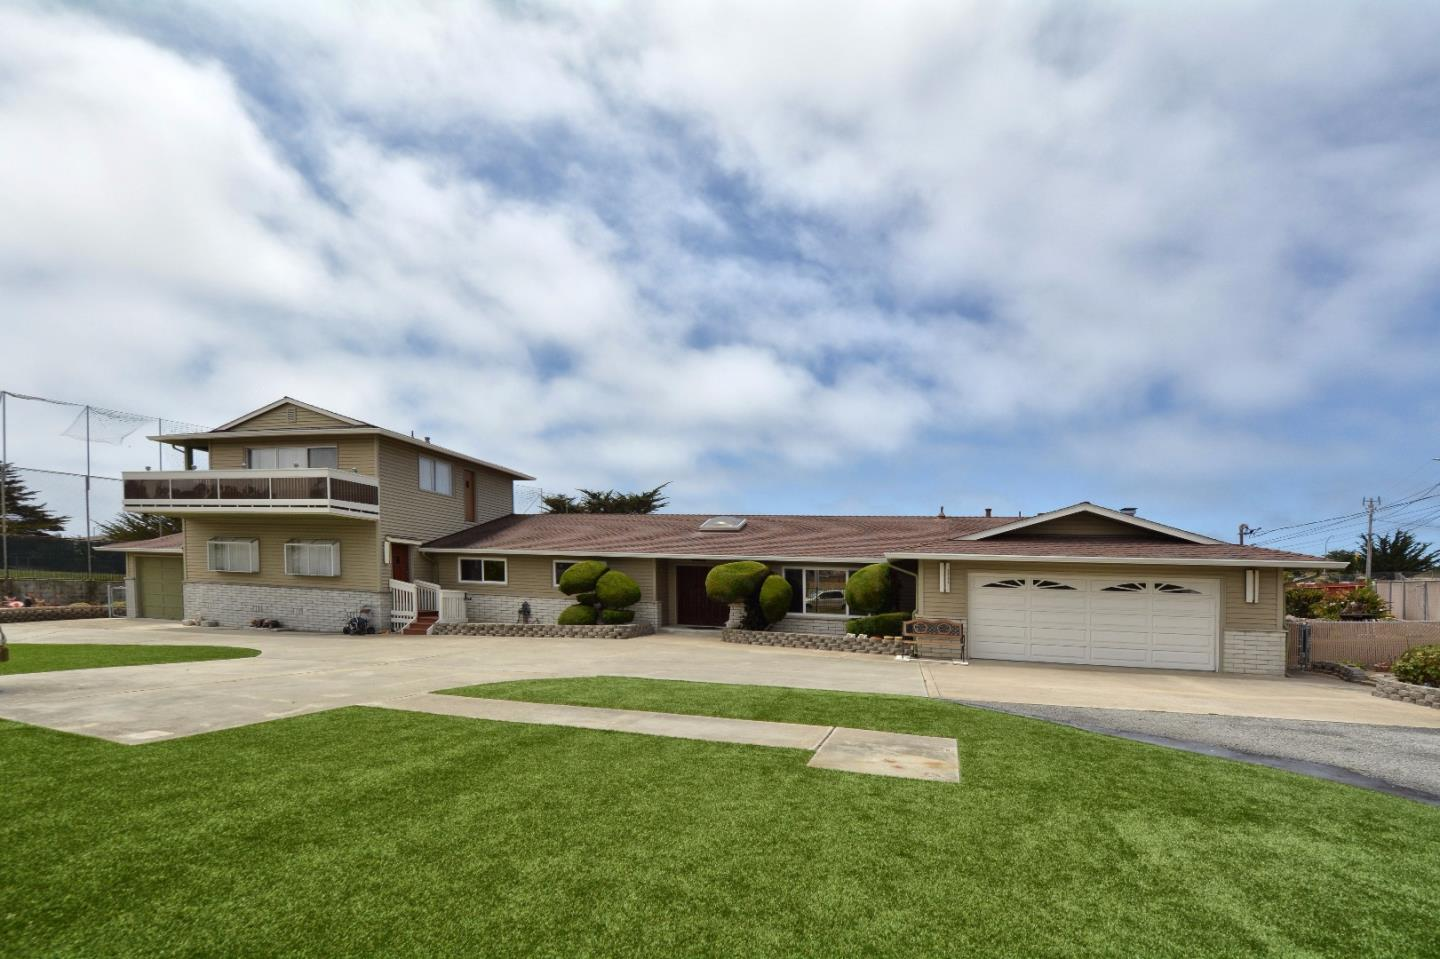 Single Family Home for Sale at 3285 Drew Street Marina, California 93933 United States